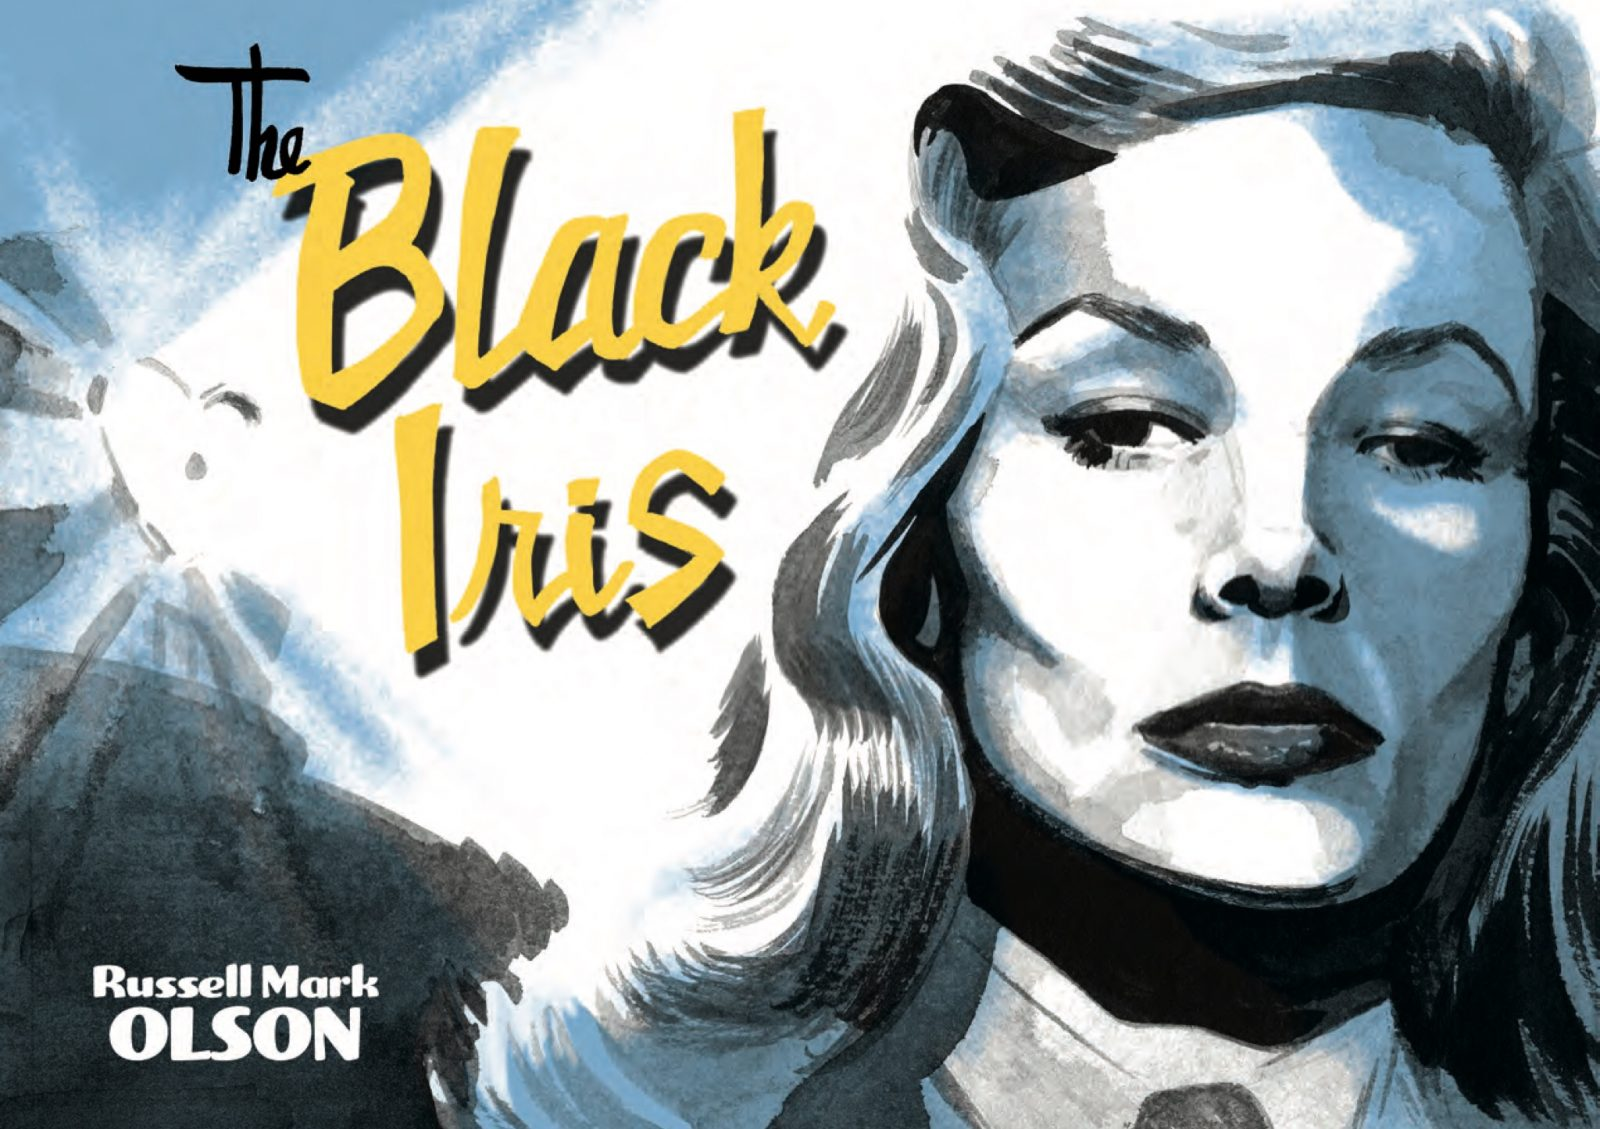 The Black Iris by Russell Mark Olson